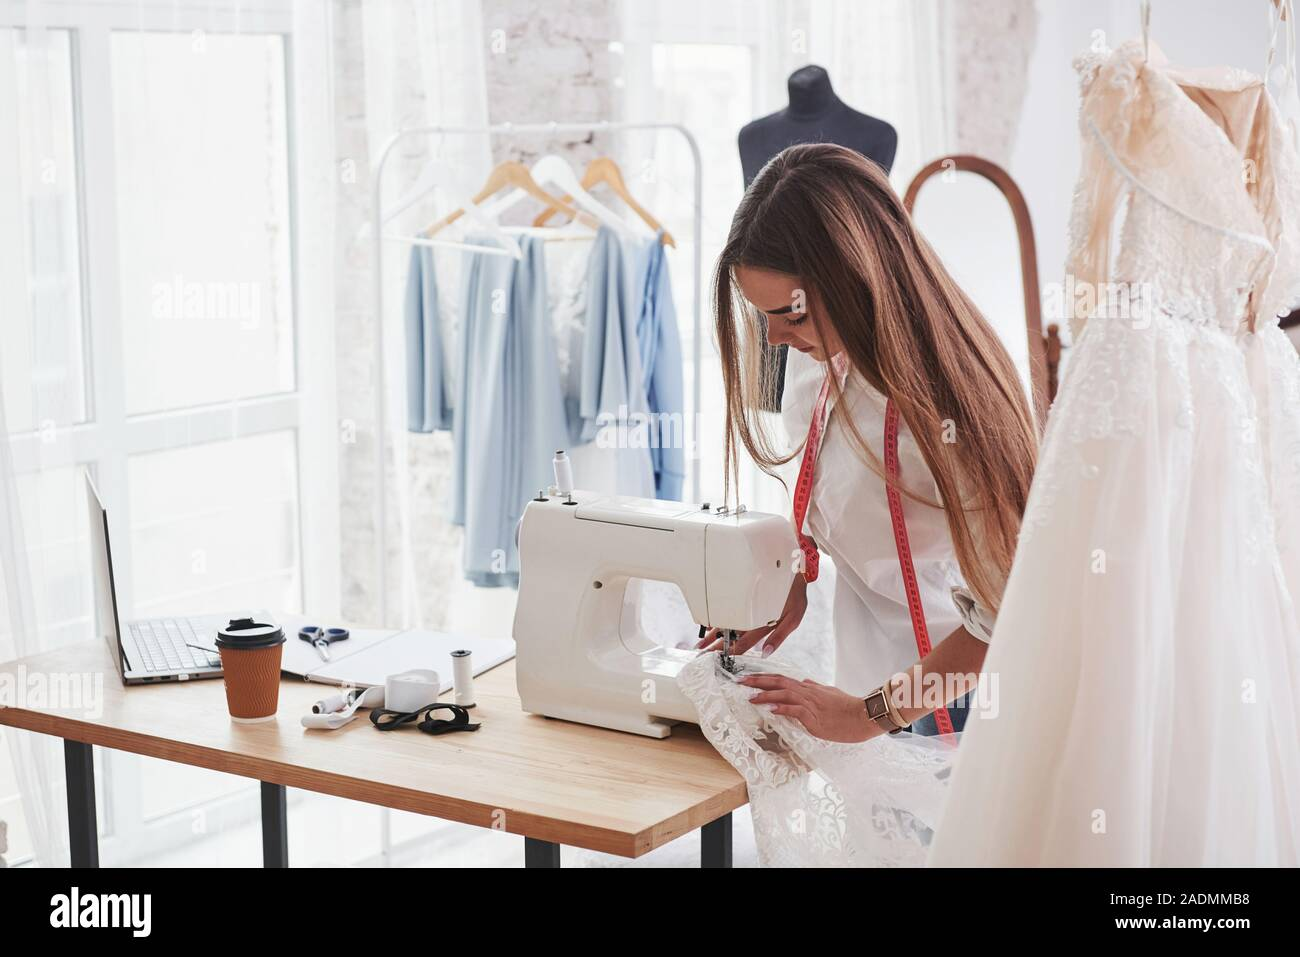 Sewing Process Female Fashion Designer Works On The New Clothes In The Workshop Stock Photo Alamy